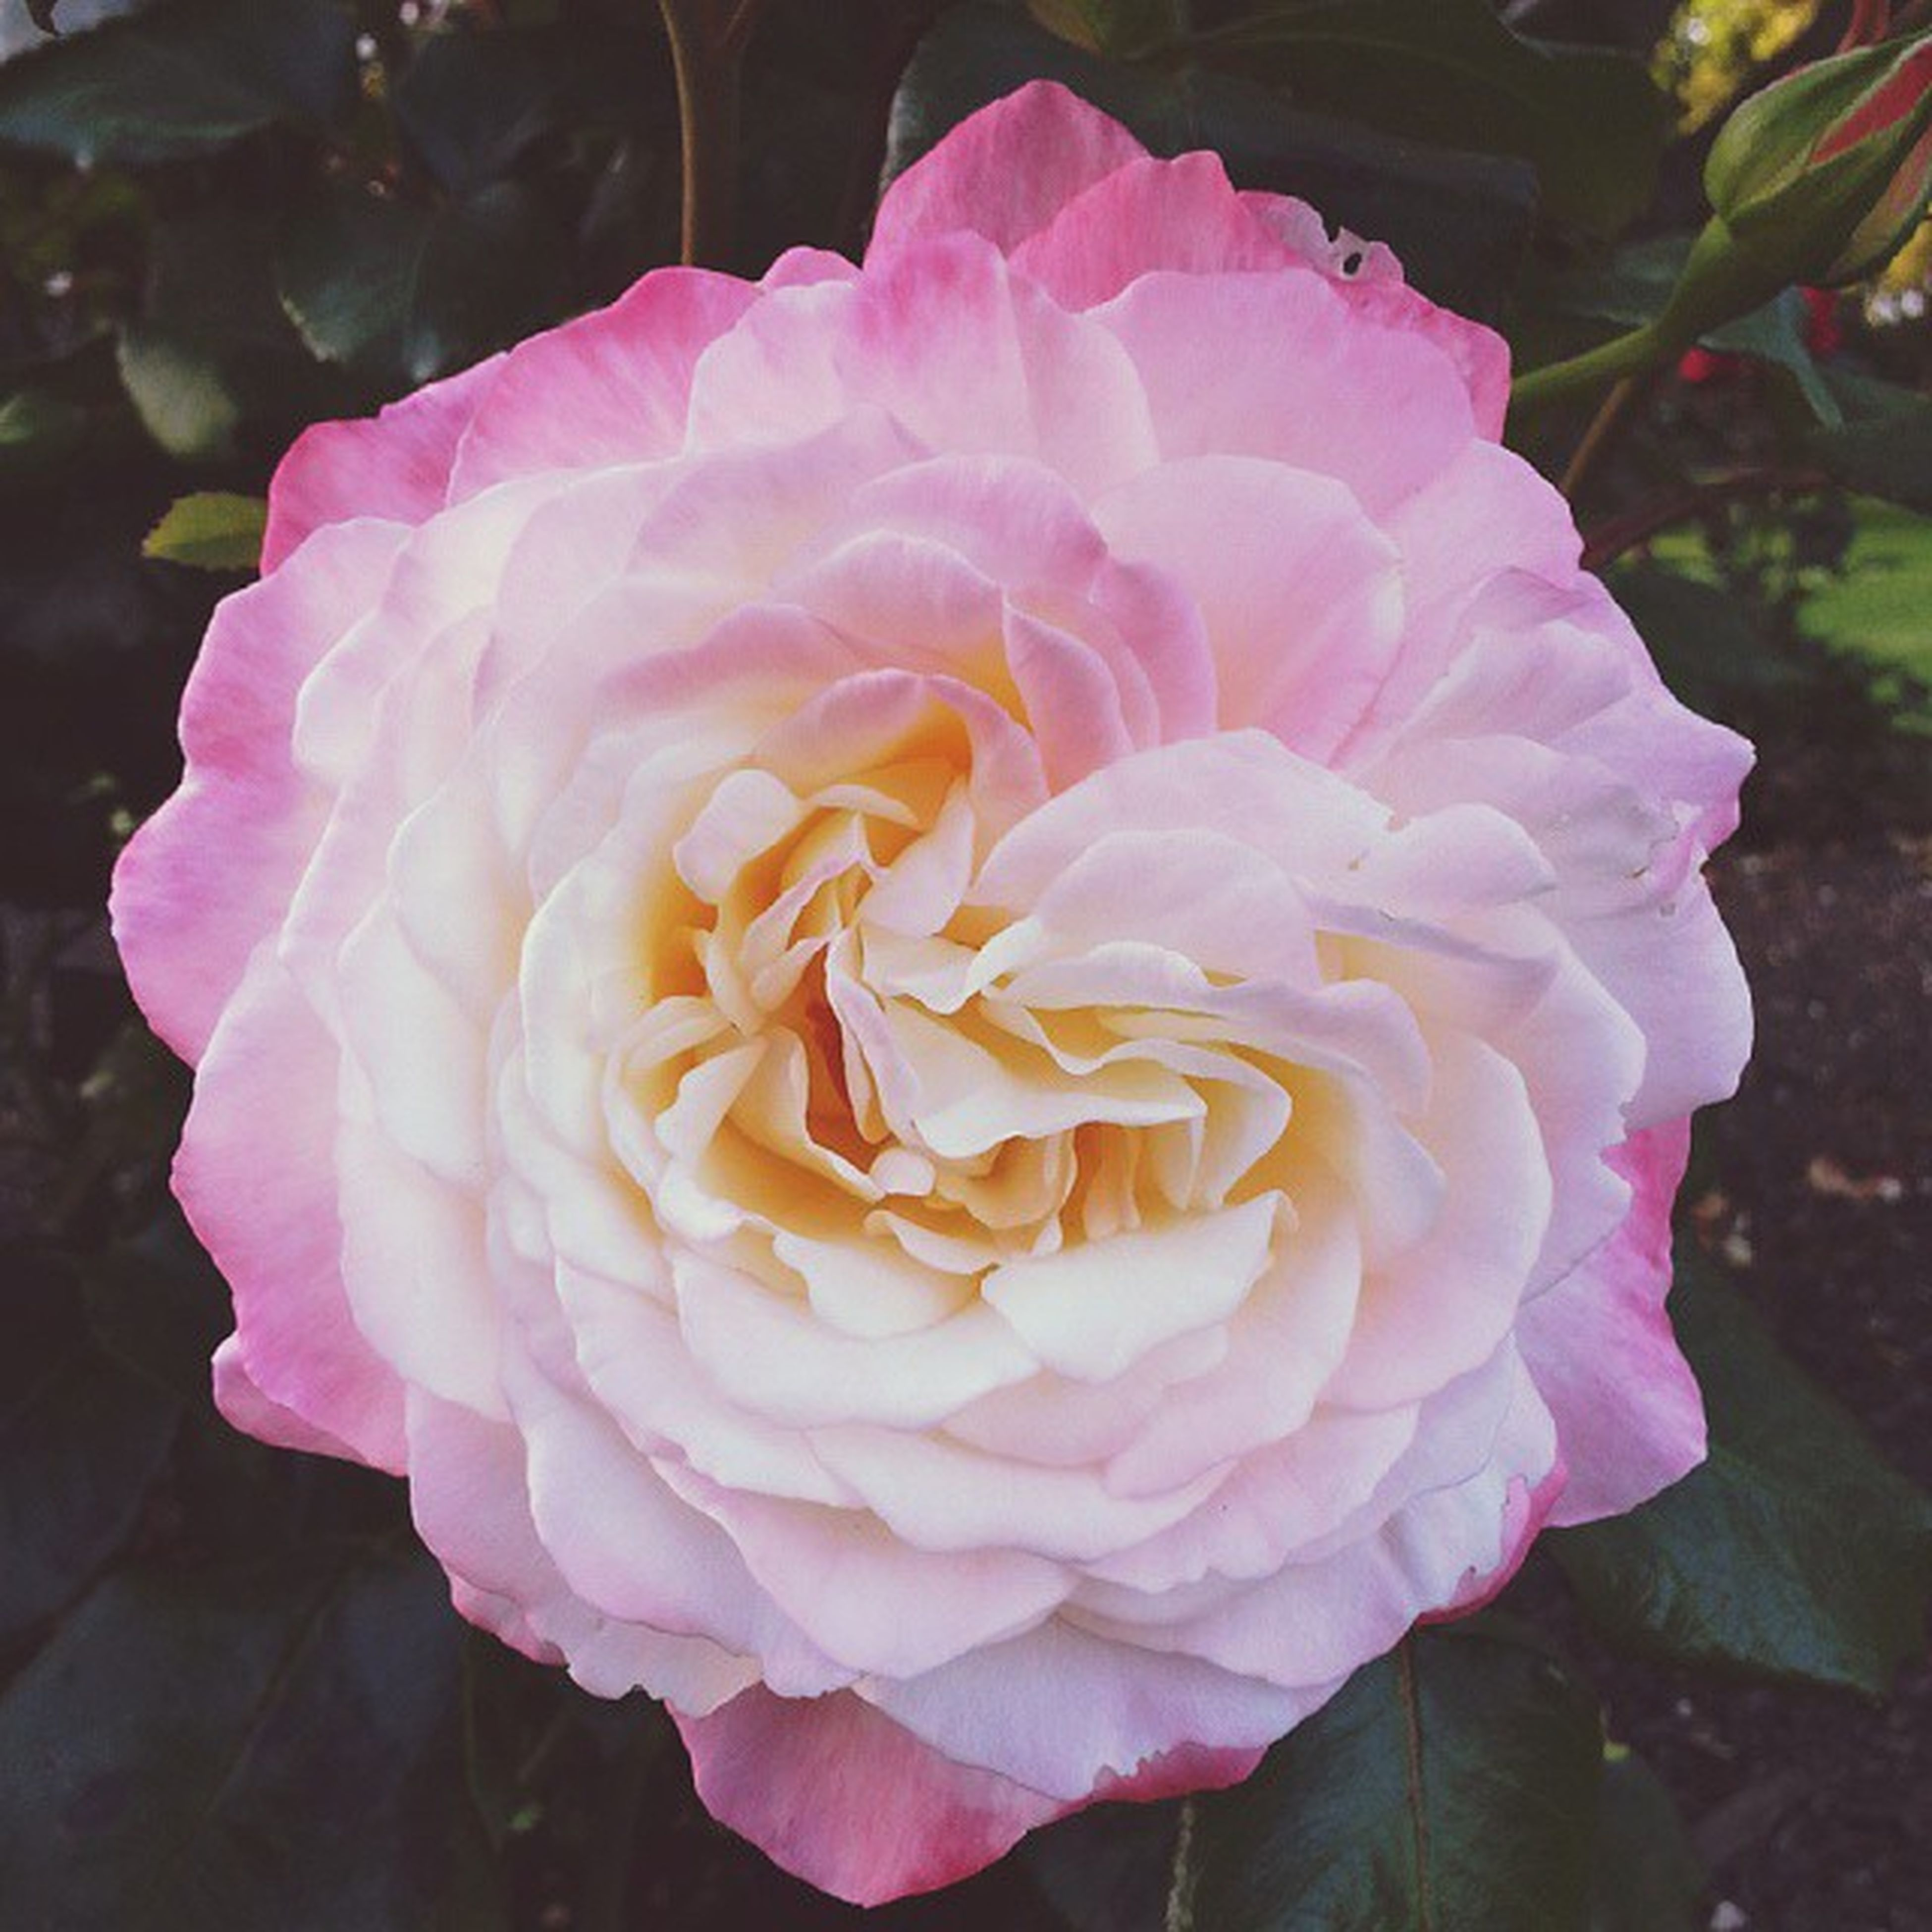 flower, petal, flower head, freshness, fragility, beauty in nature, close-up, rose - flower, growth, single flower, pink color, blooming, nature, focus on foreground, in bloom, plant, high angle view, outdoors, blossom, day